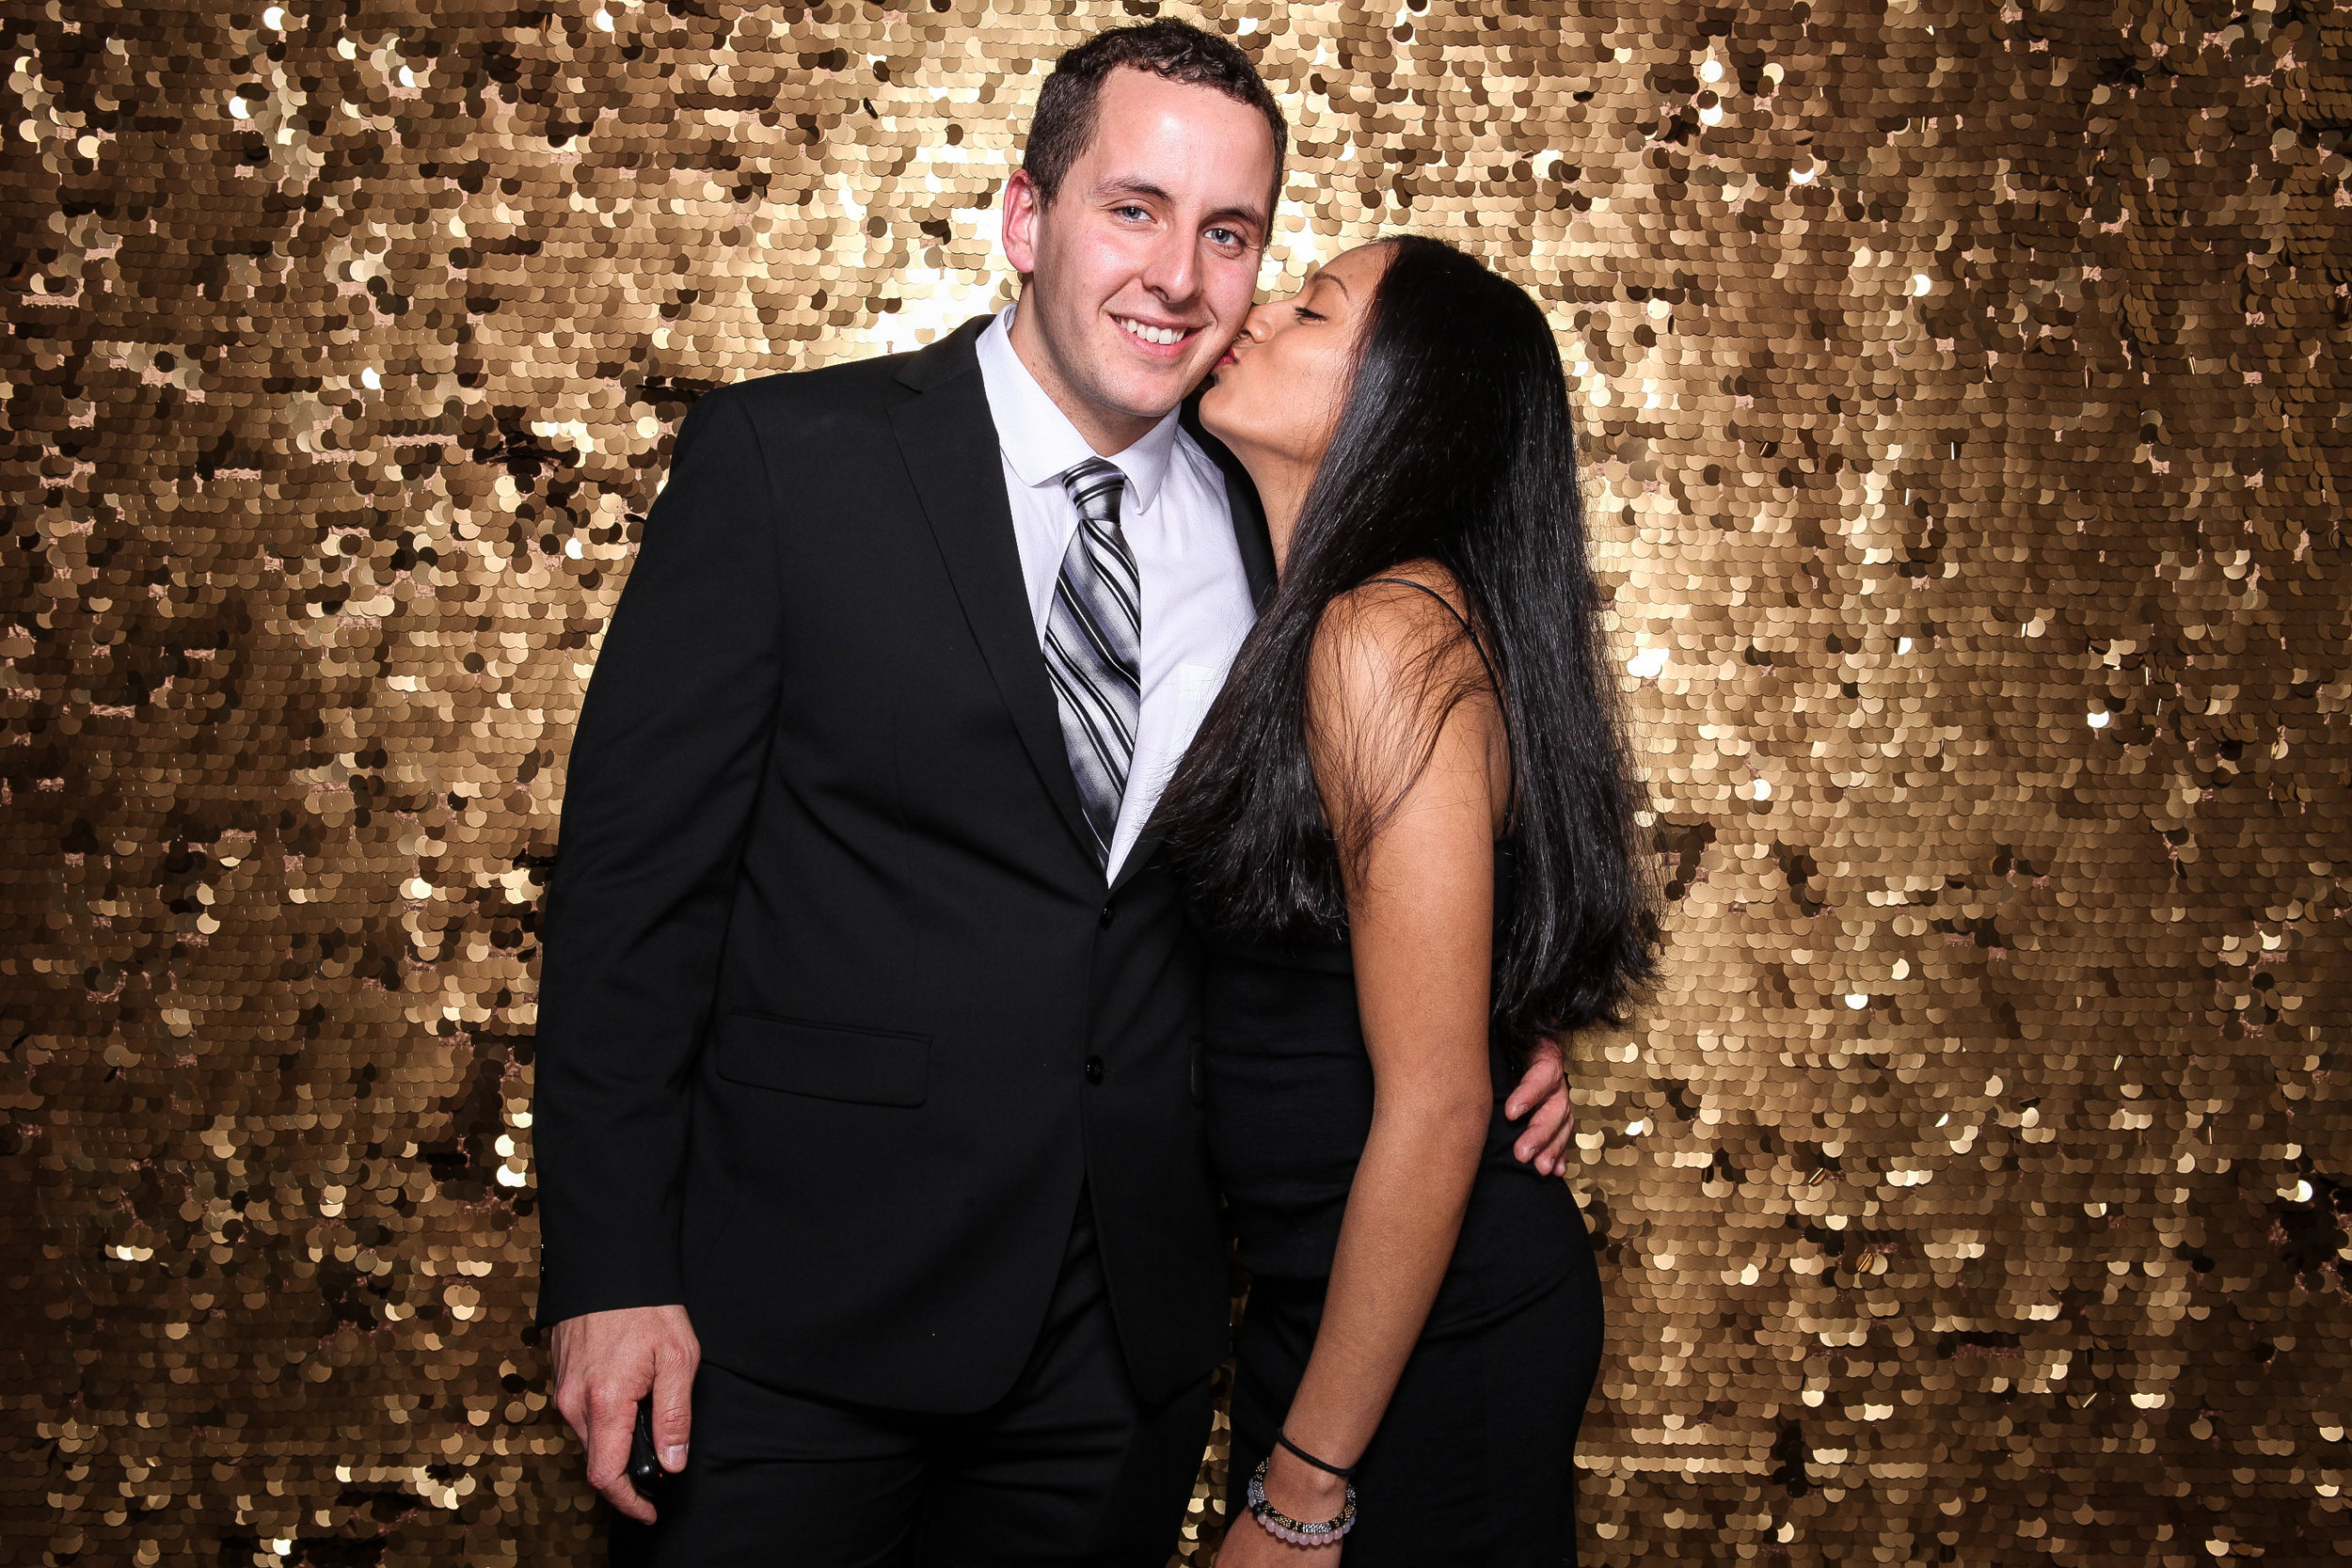 20190503_Adelphi_Senior_Formal-185.jpg